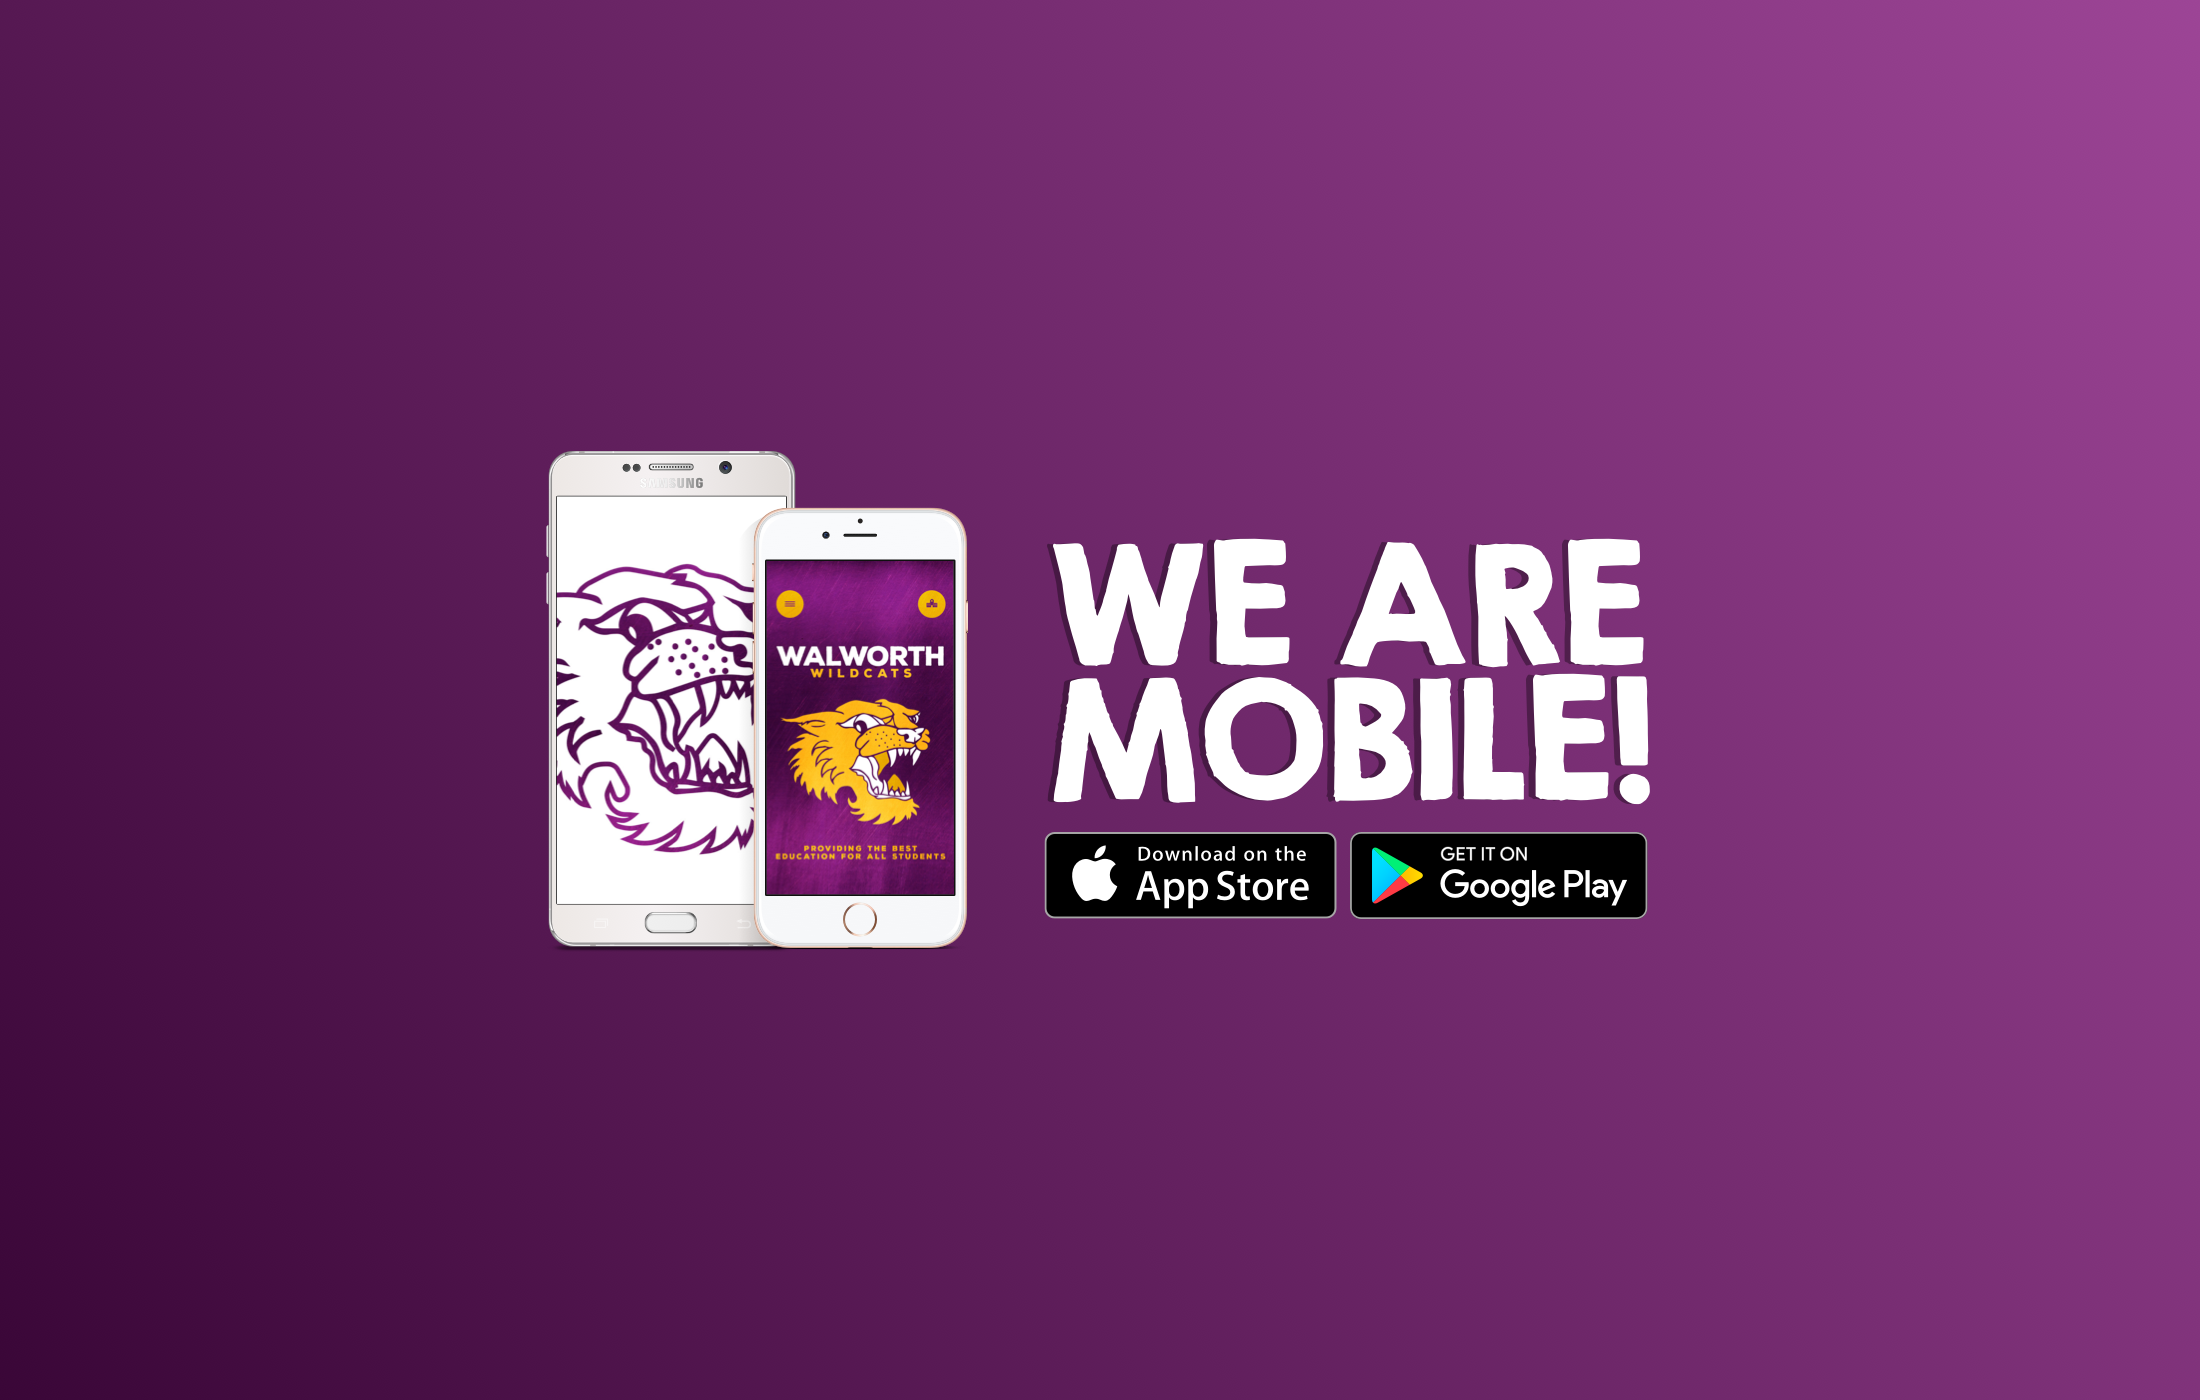 We Are Mobile Download in the App Store or Get it on Google Play